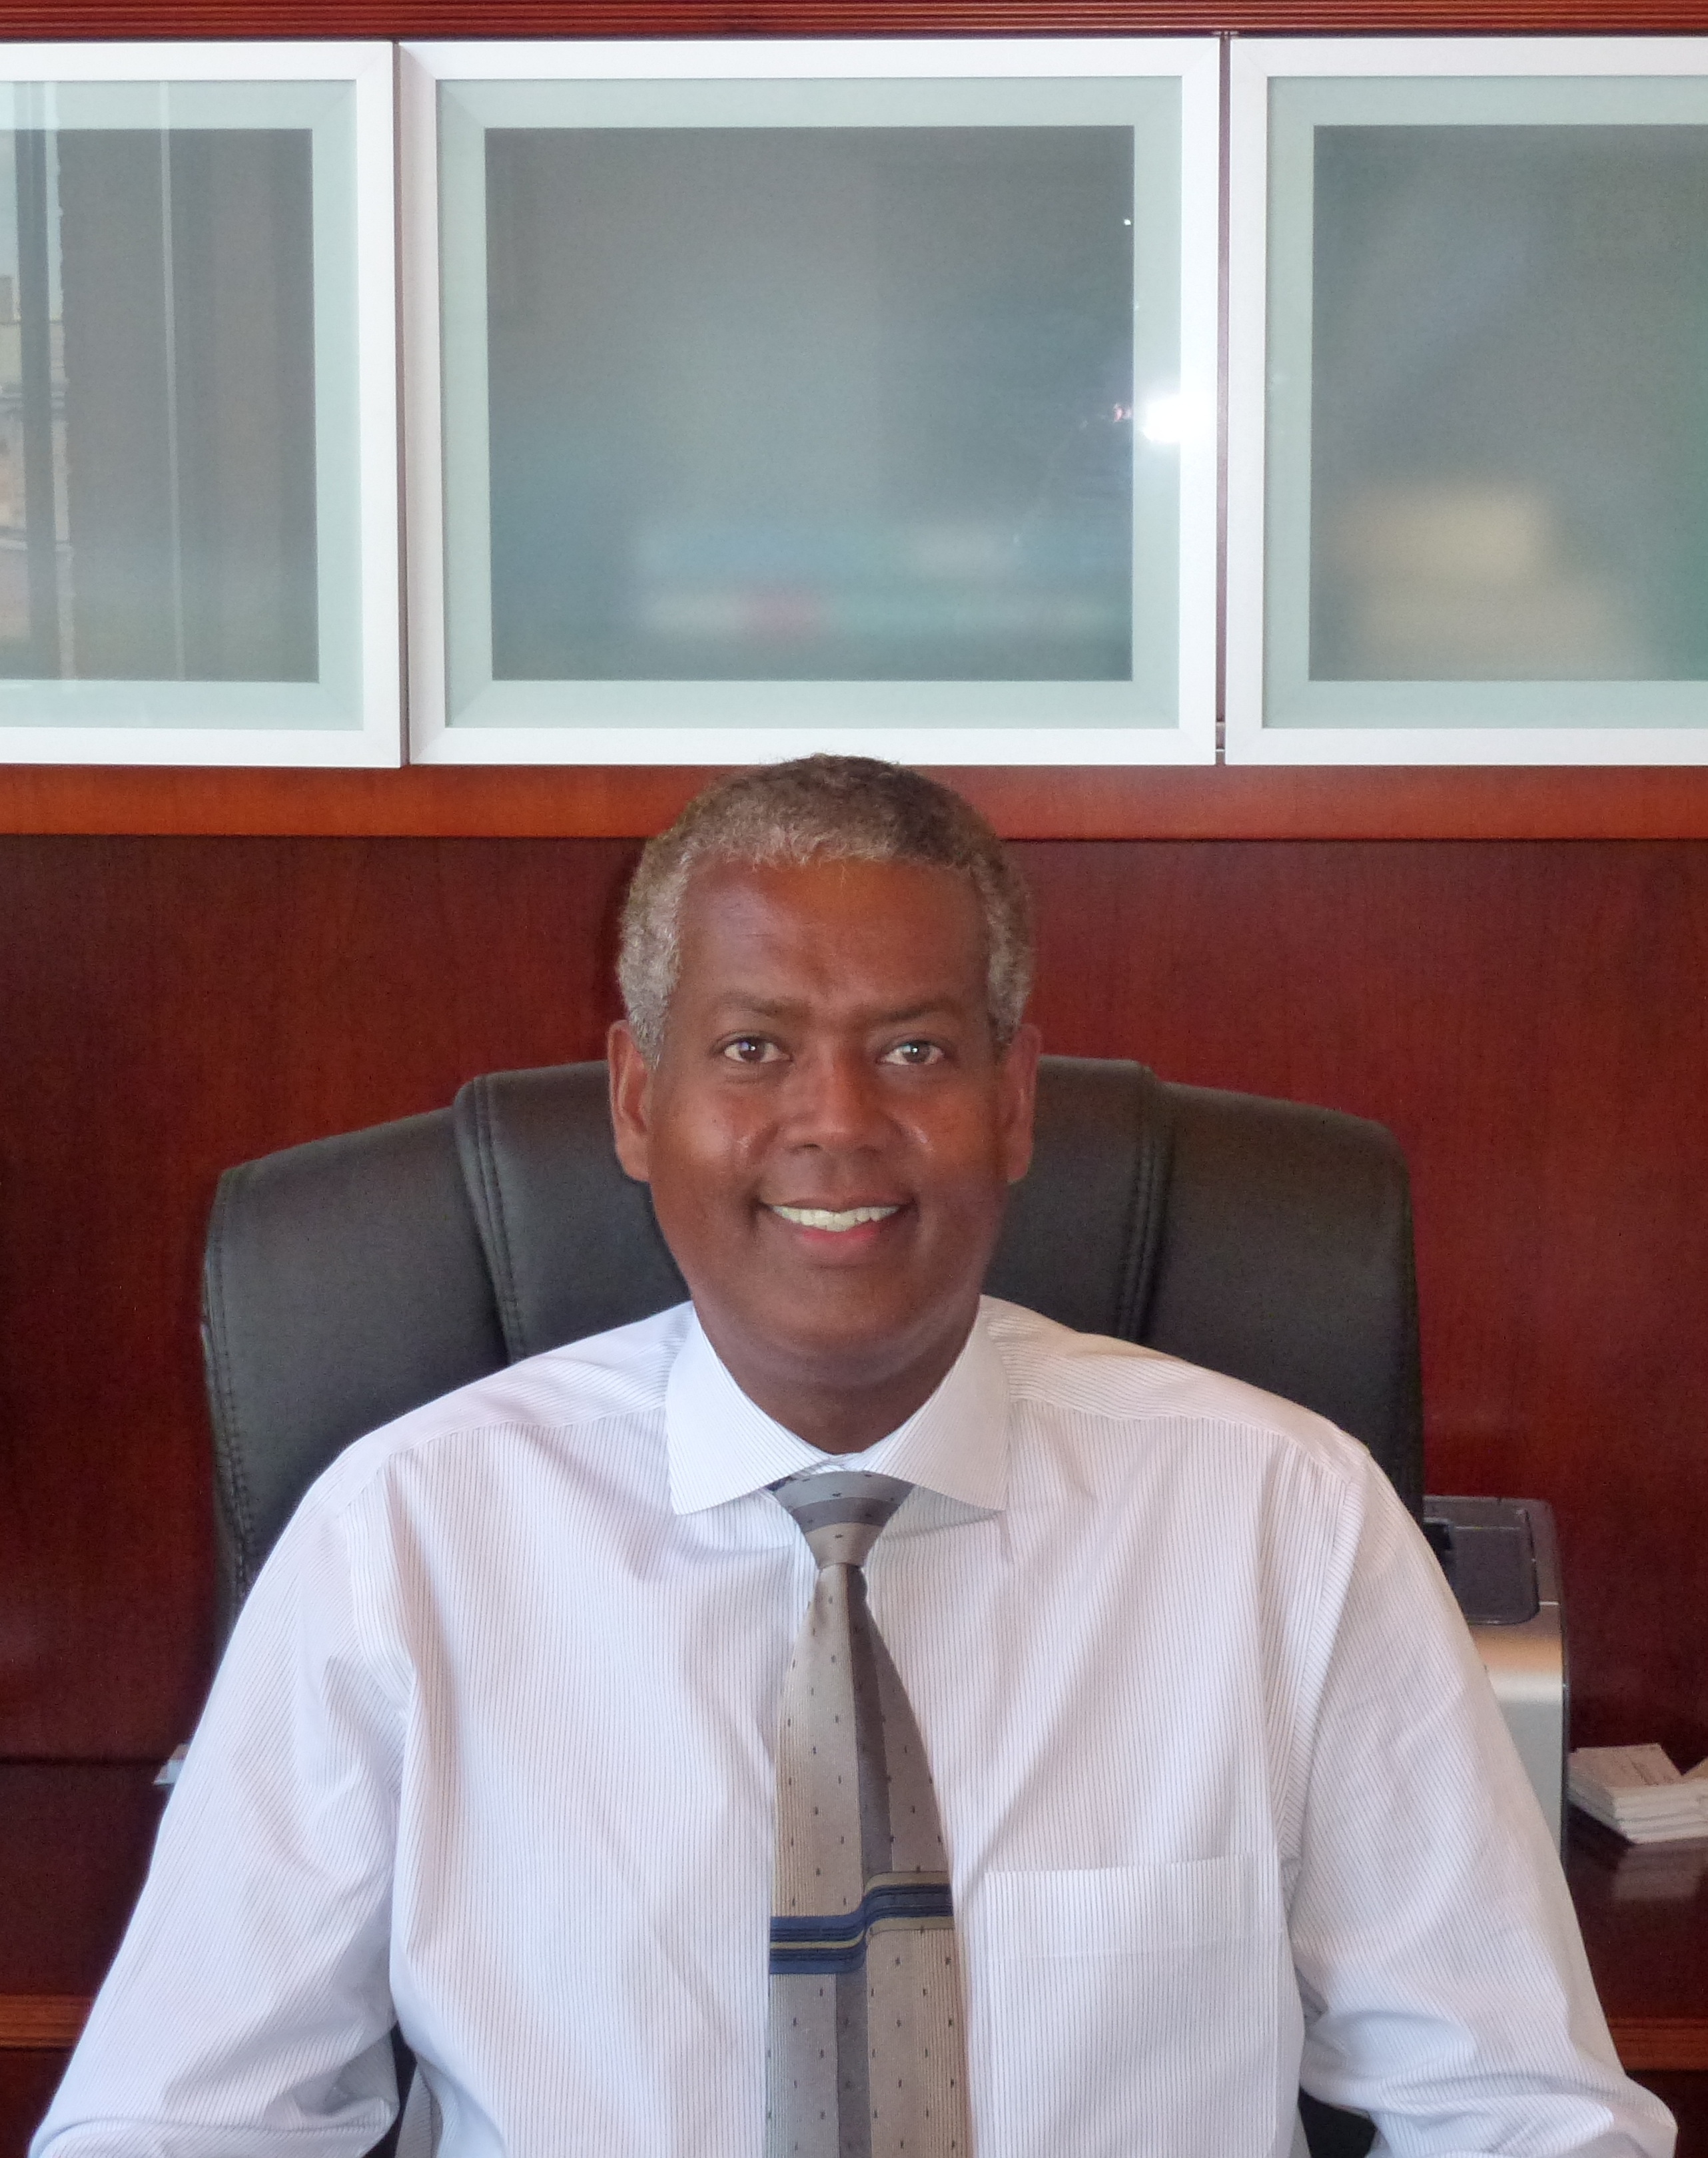 Abdulhamid Ali (pictured) is the CEO of DAAR Engineering Inc., the company that holds the No. 94 spot on the BE100s Industrial/Service list. DAAR Engineering is an engineering services company in Milwaukee, Wisconsin.